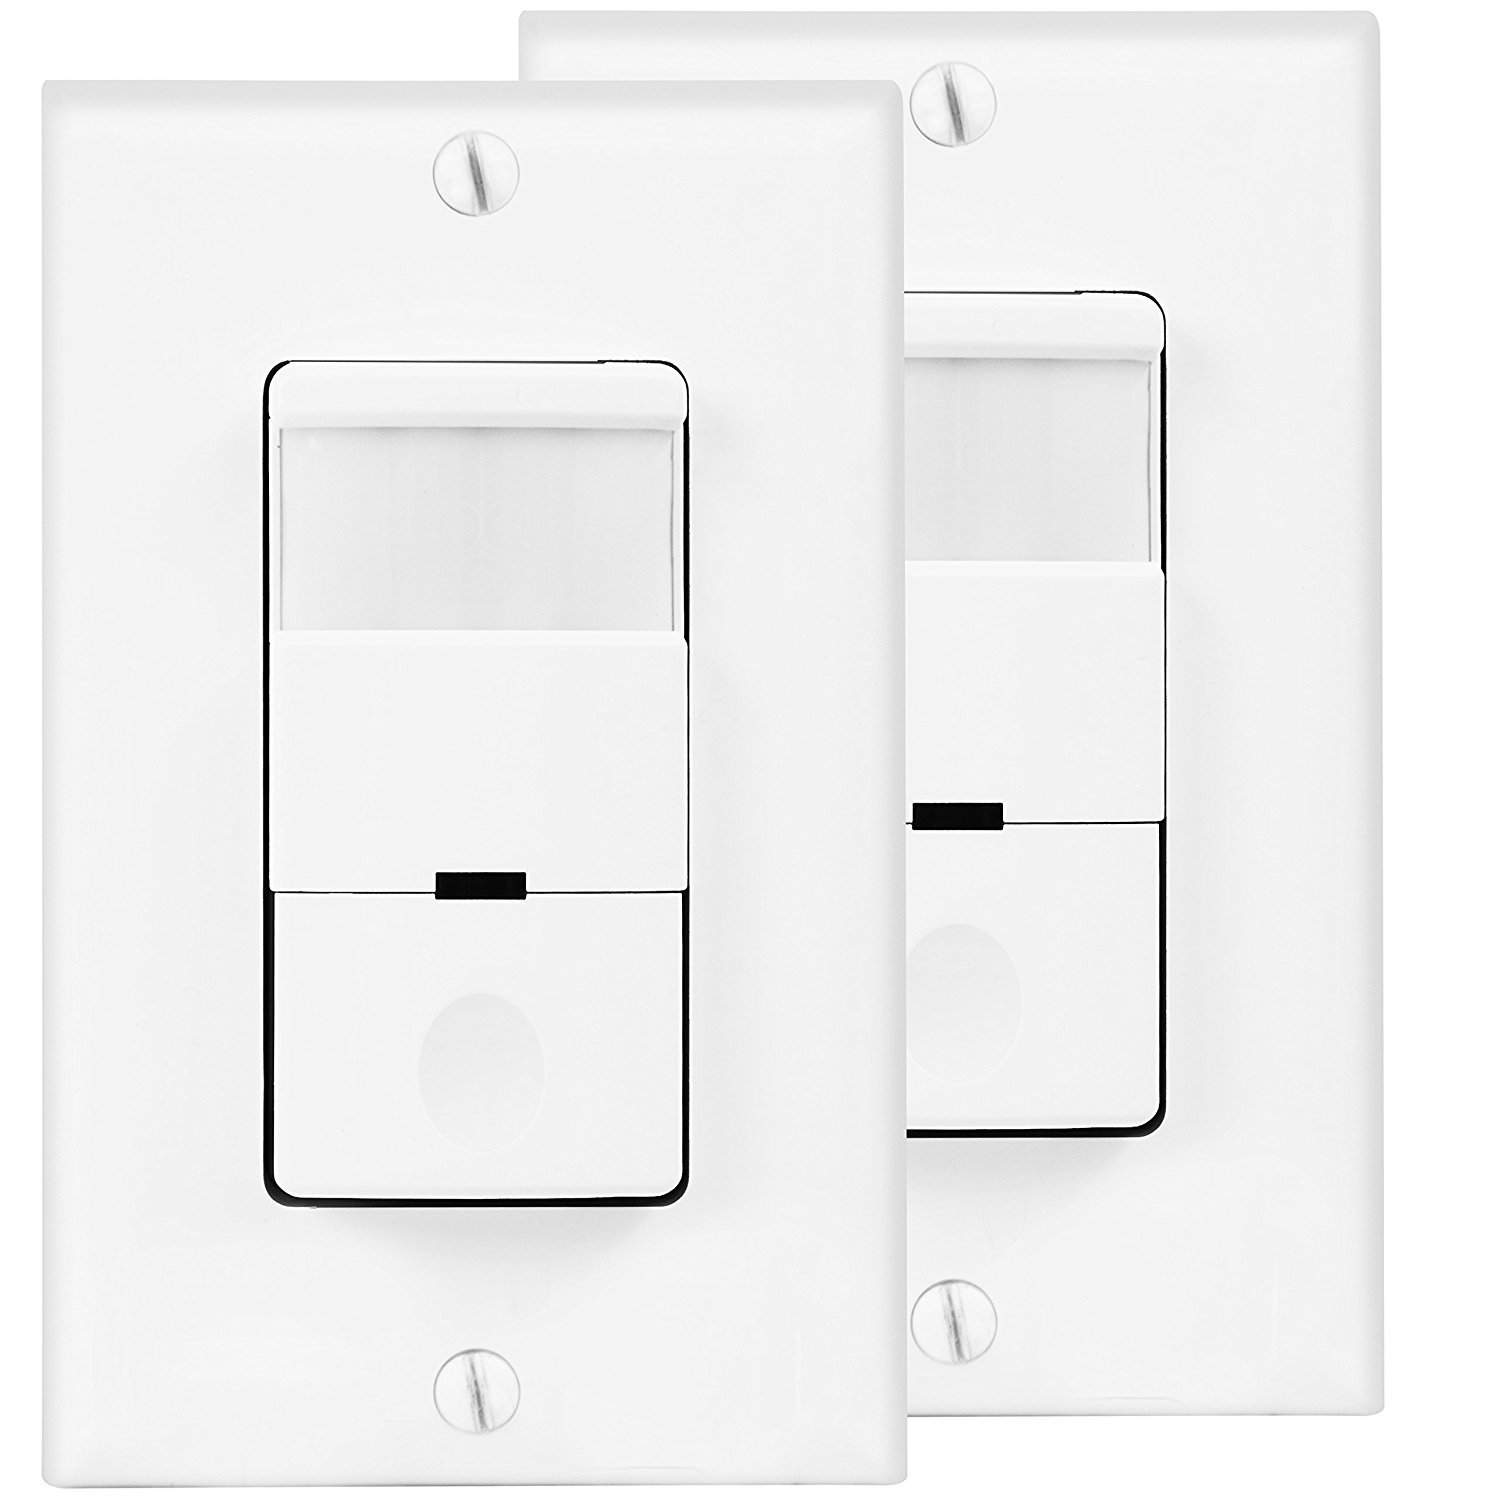 TOPGREENER Motion Detector Light Switch, In Wall Sensor Switch, Occupancy Sensor Switch 500W LED CFL 1/8HP, Wall Plates Included, Neutral Wire Required, TDOS5, White, 2 Pack